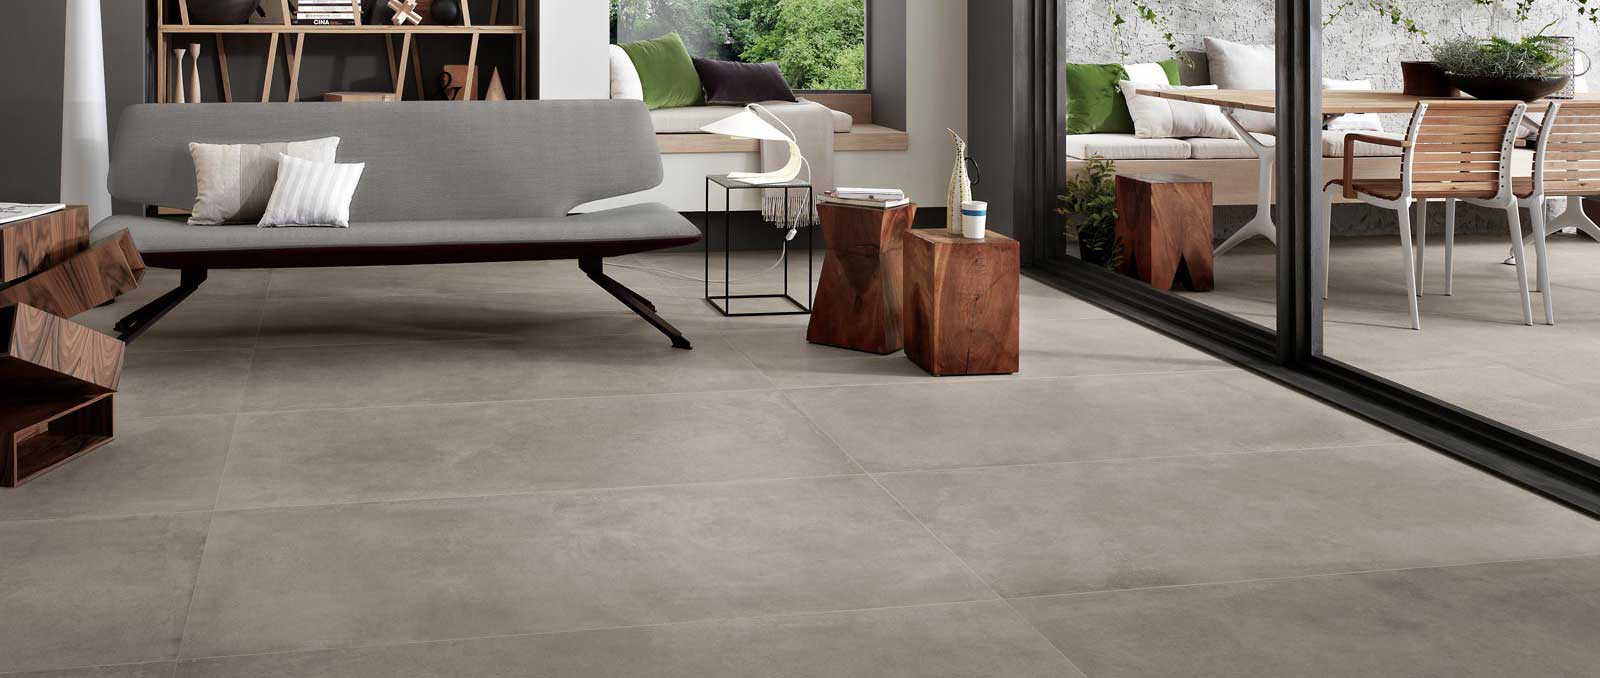 Boom. The new concrete effect tile by Ragno